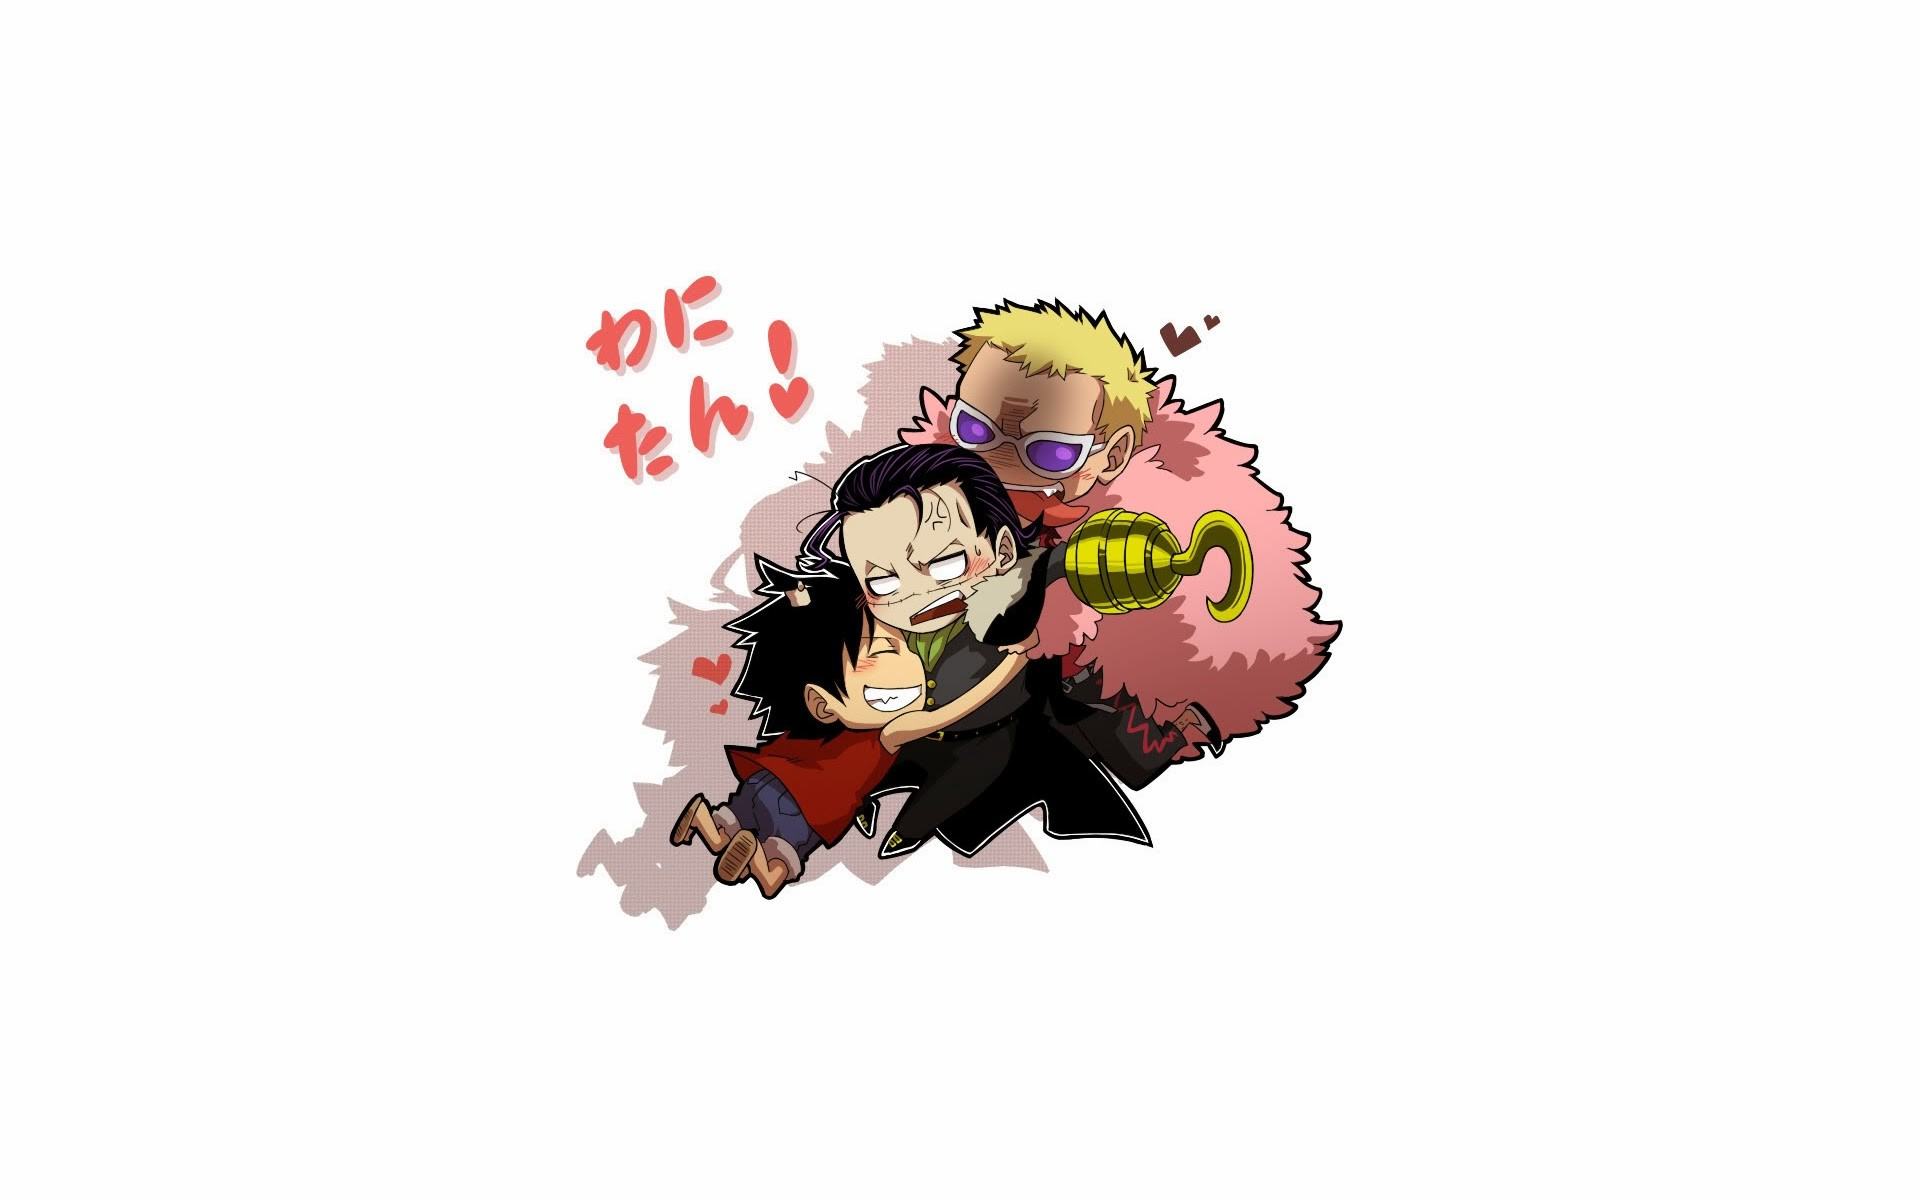 1920x1200 luffy crocodile and doflamingo one piece anime hd wallpaper